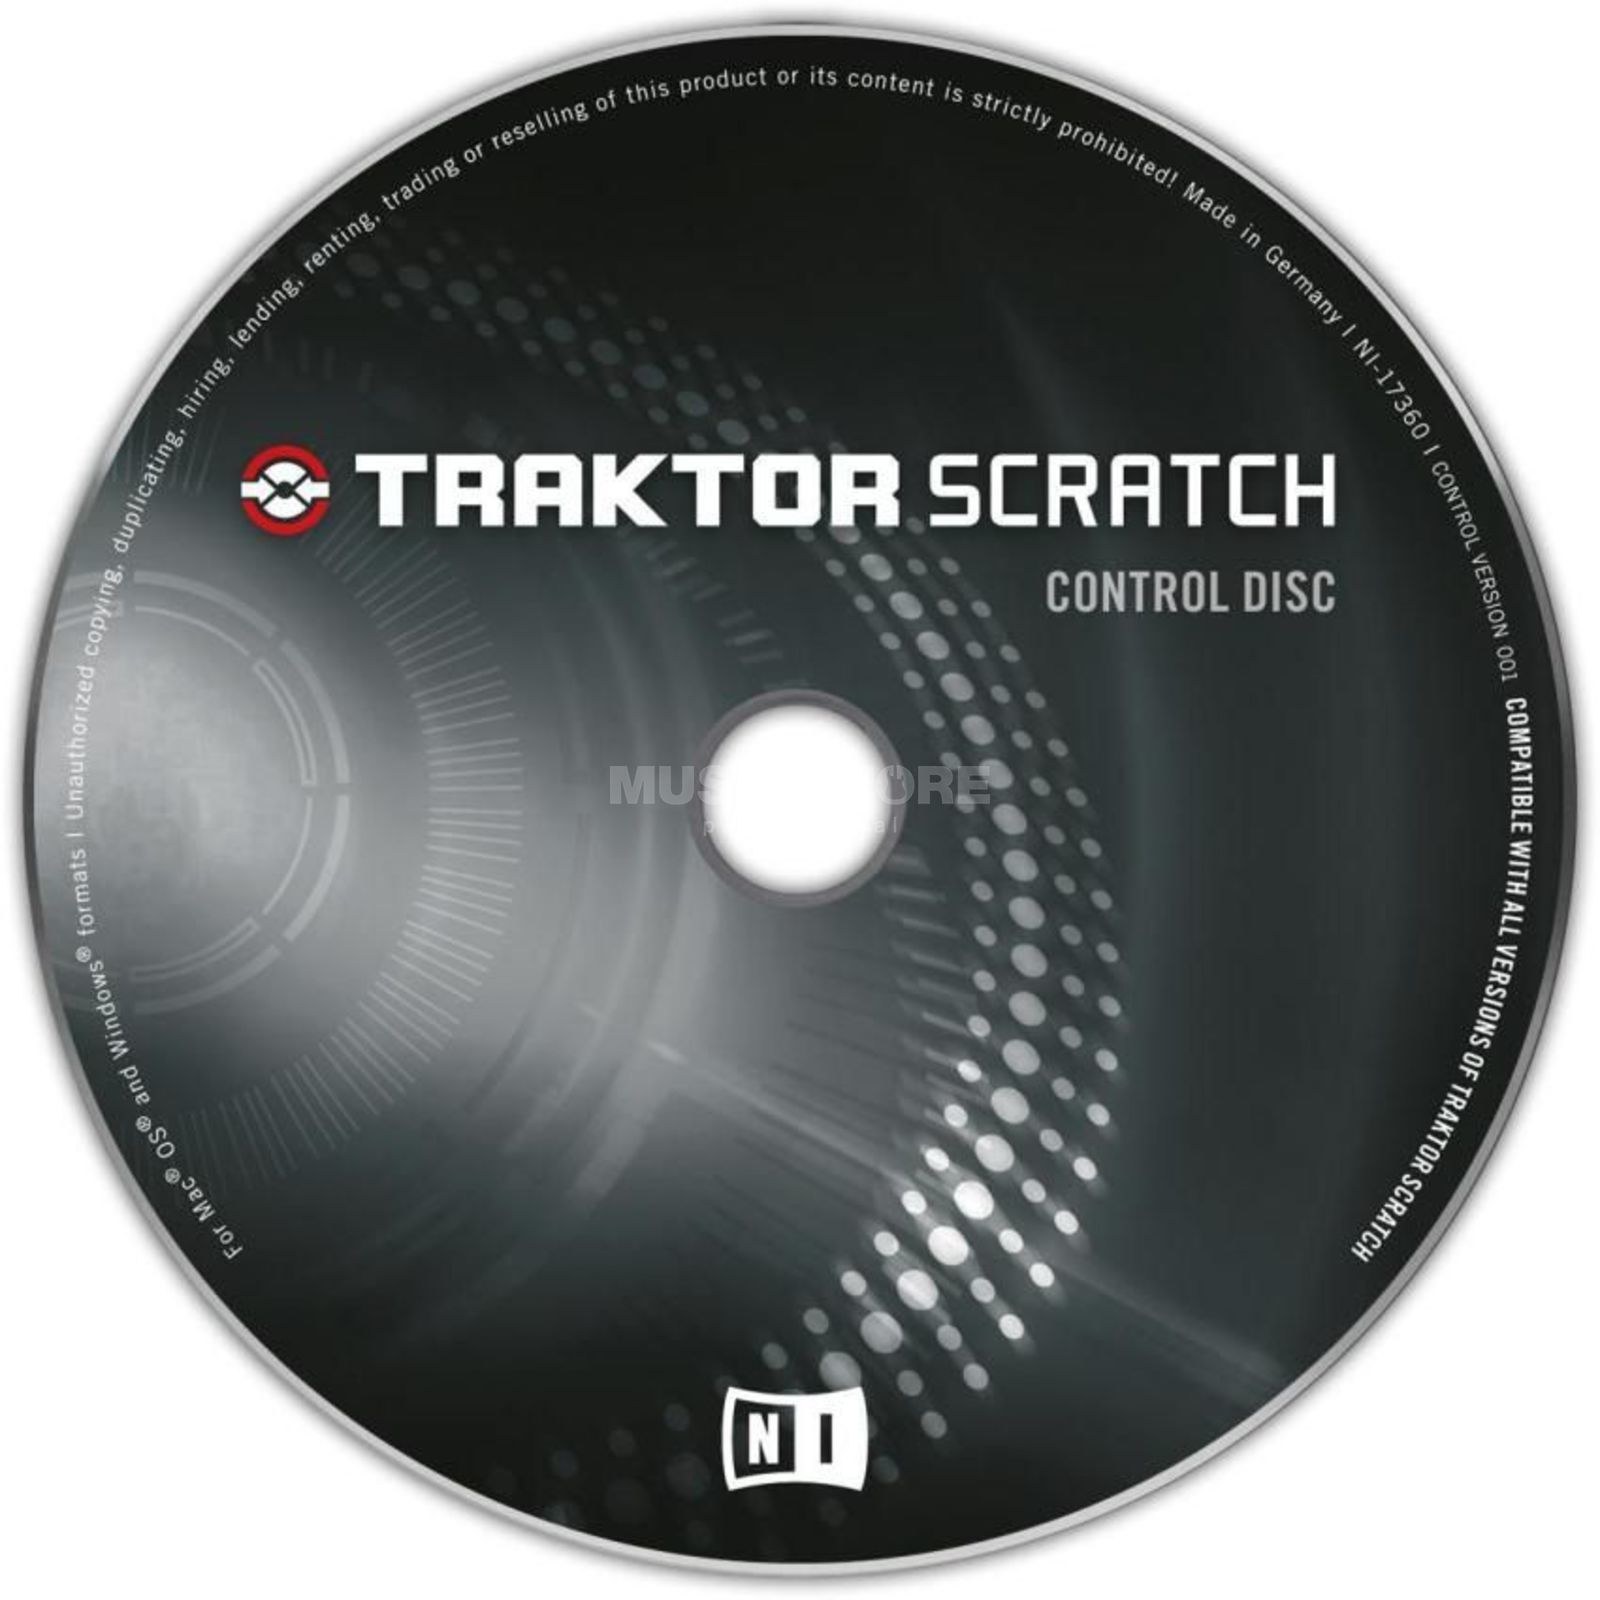 Native Instruments Traktor Control CD MK1  Scratch Pro (Old Version) Produktbild